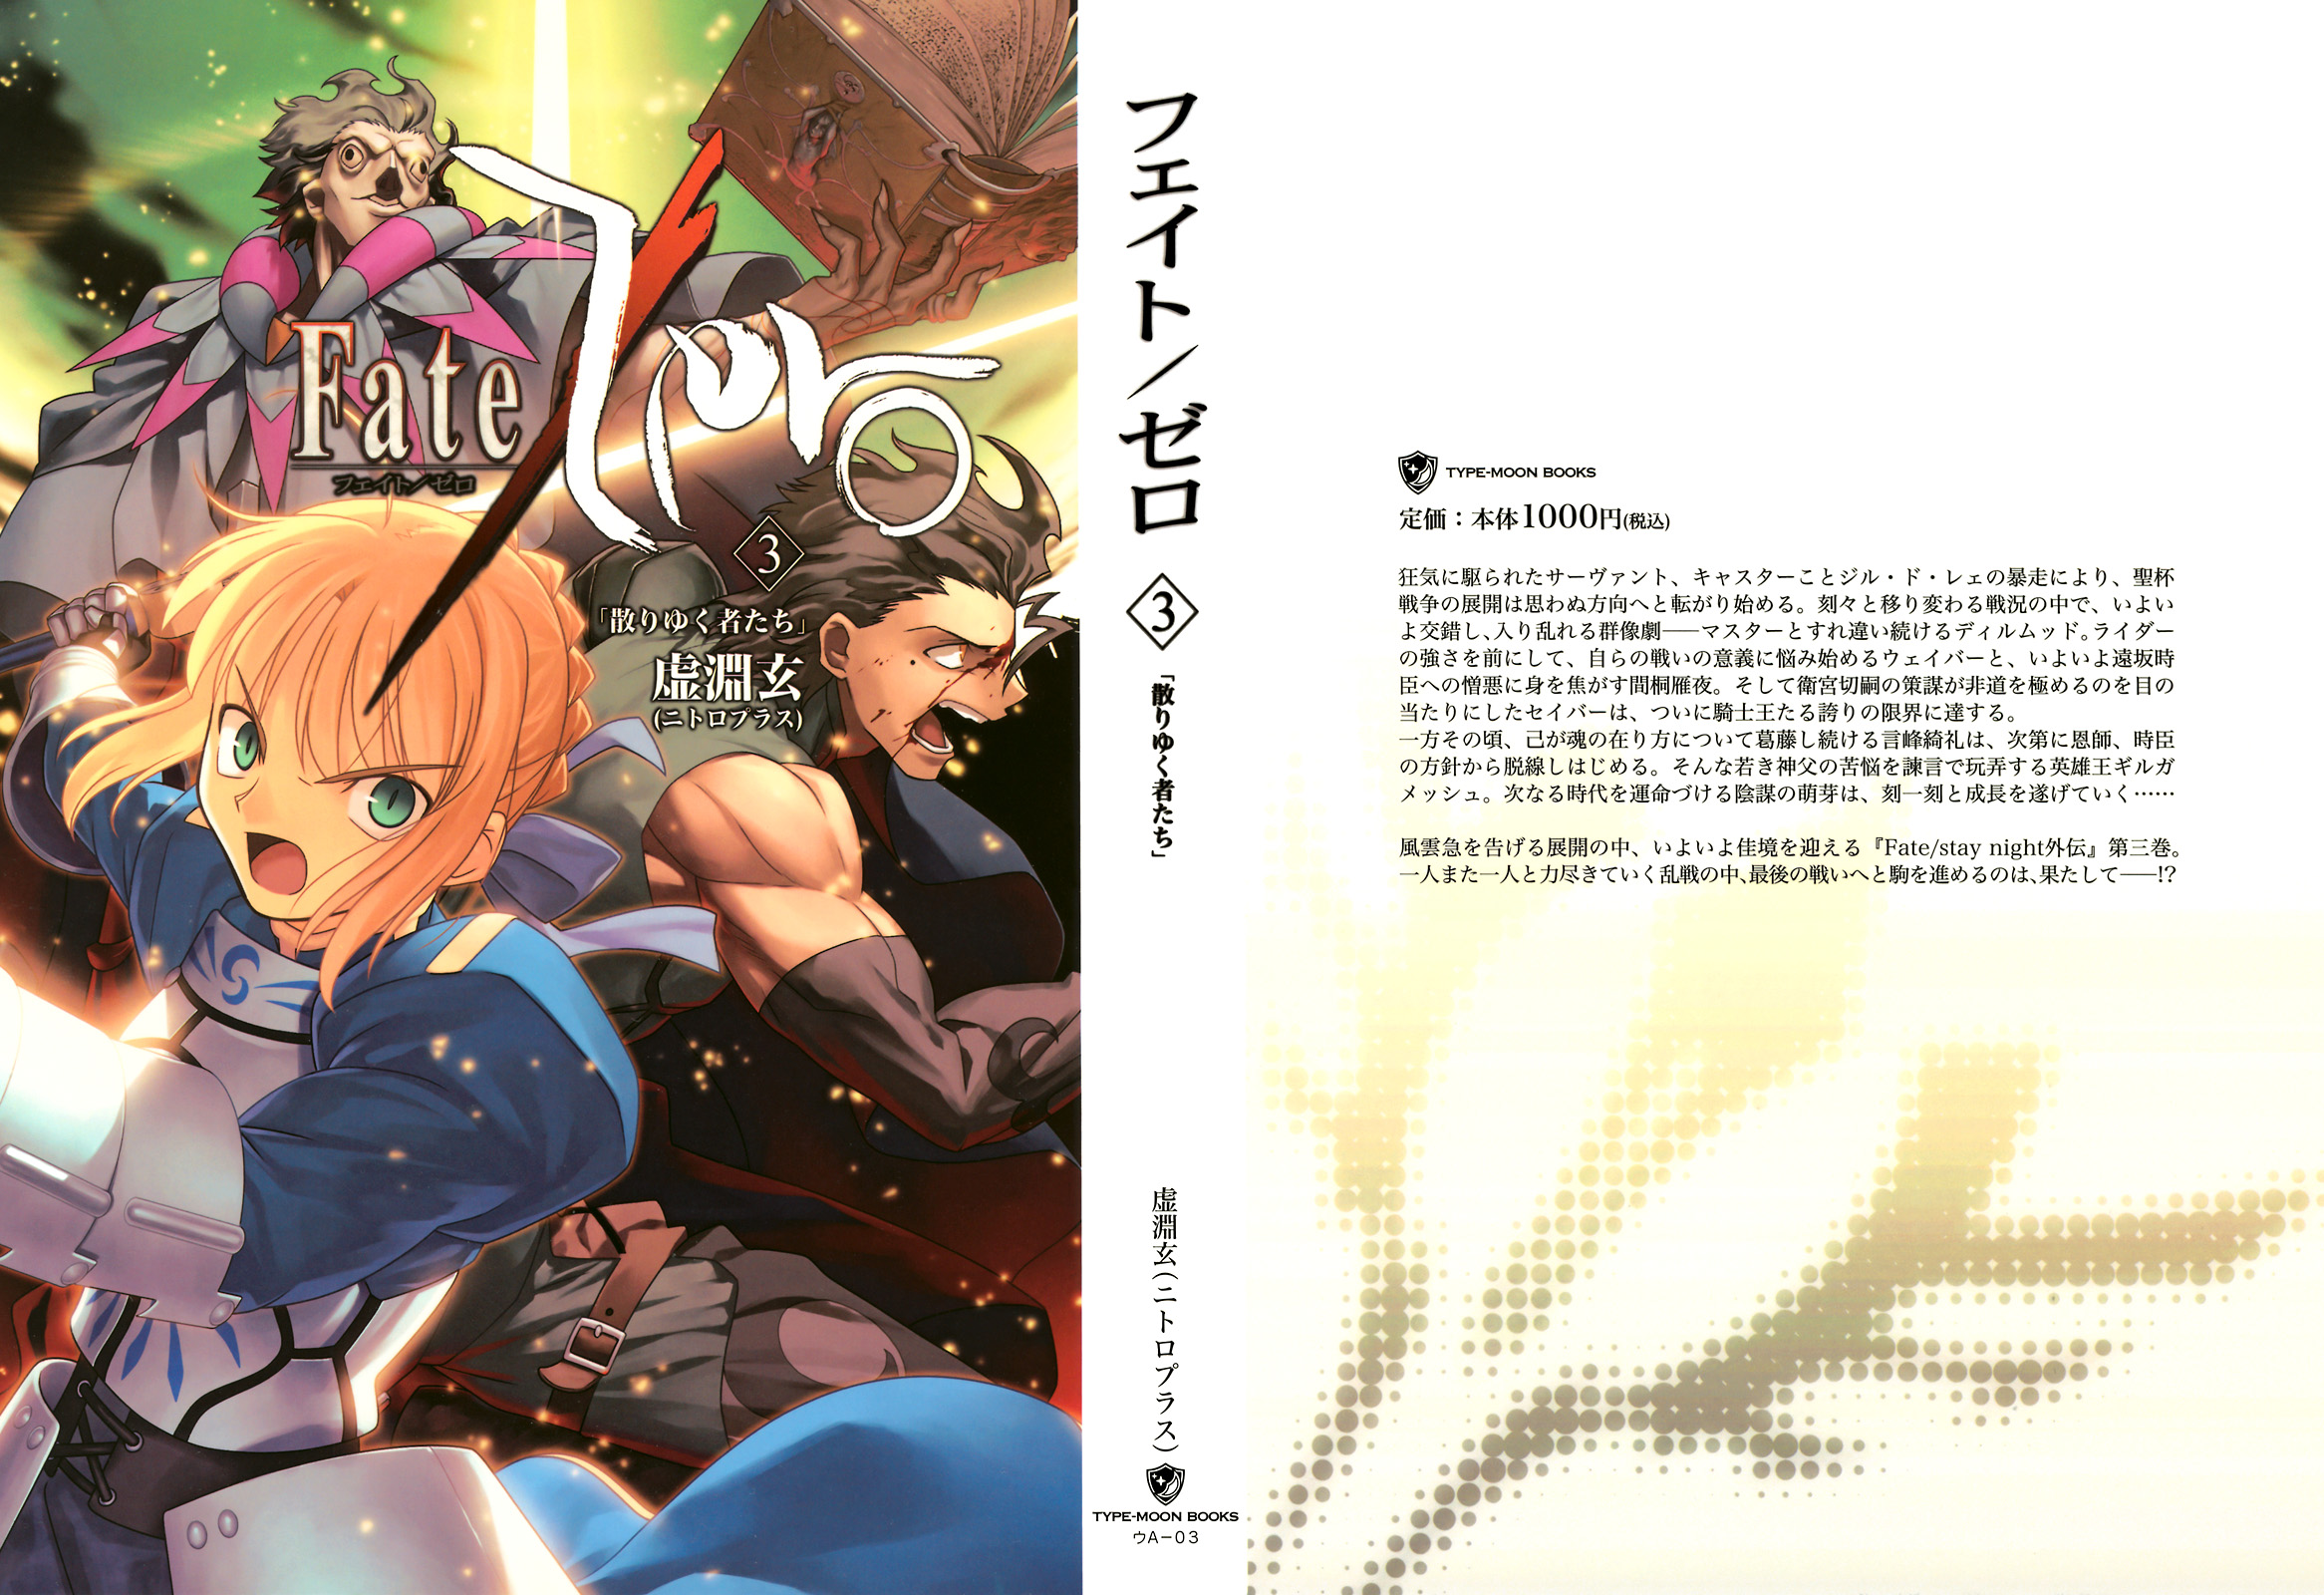 Fate/Zero Vol 3 - Full Text